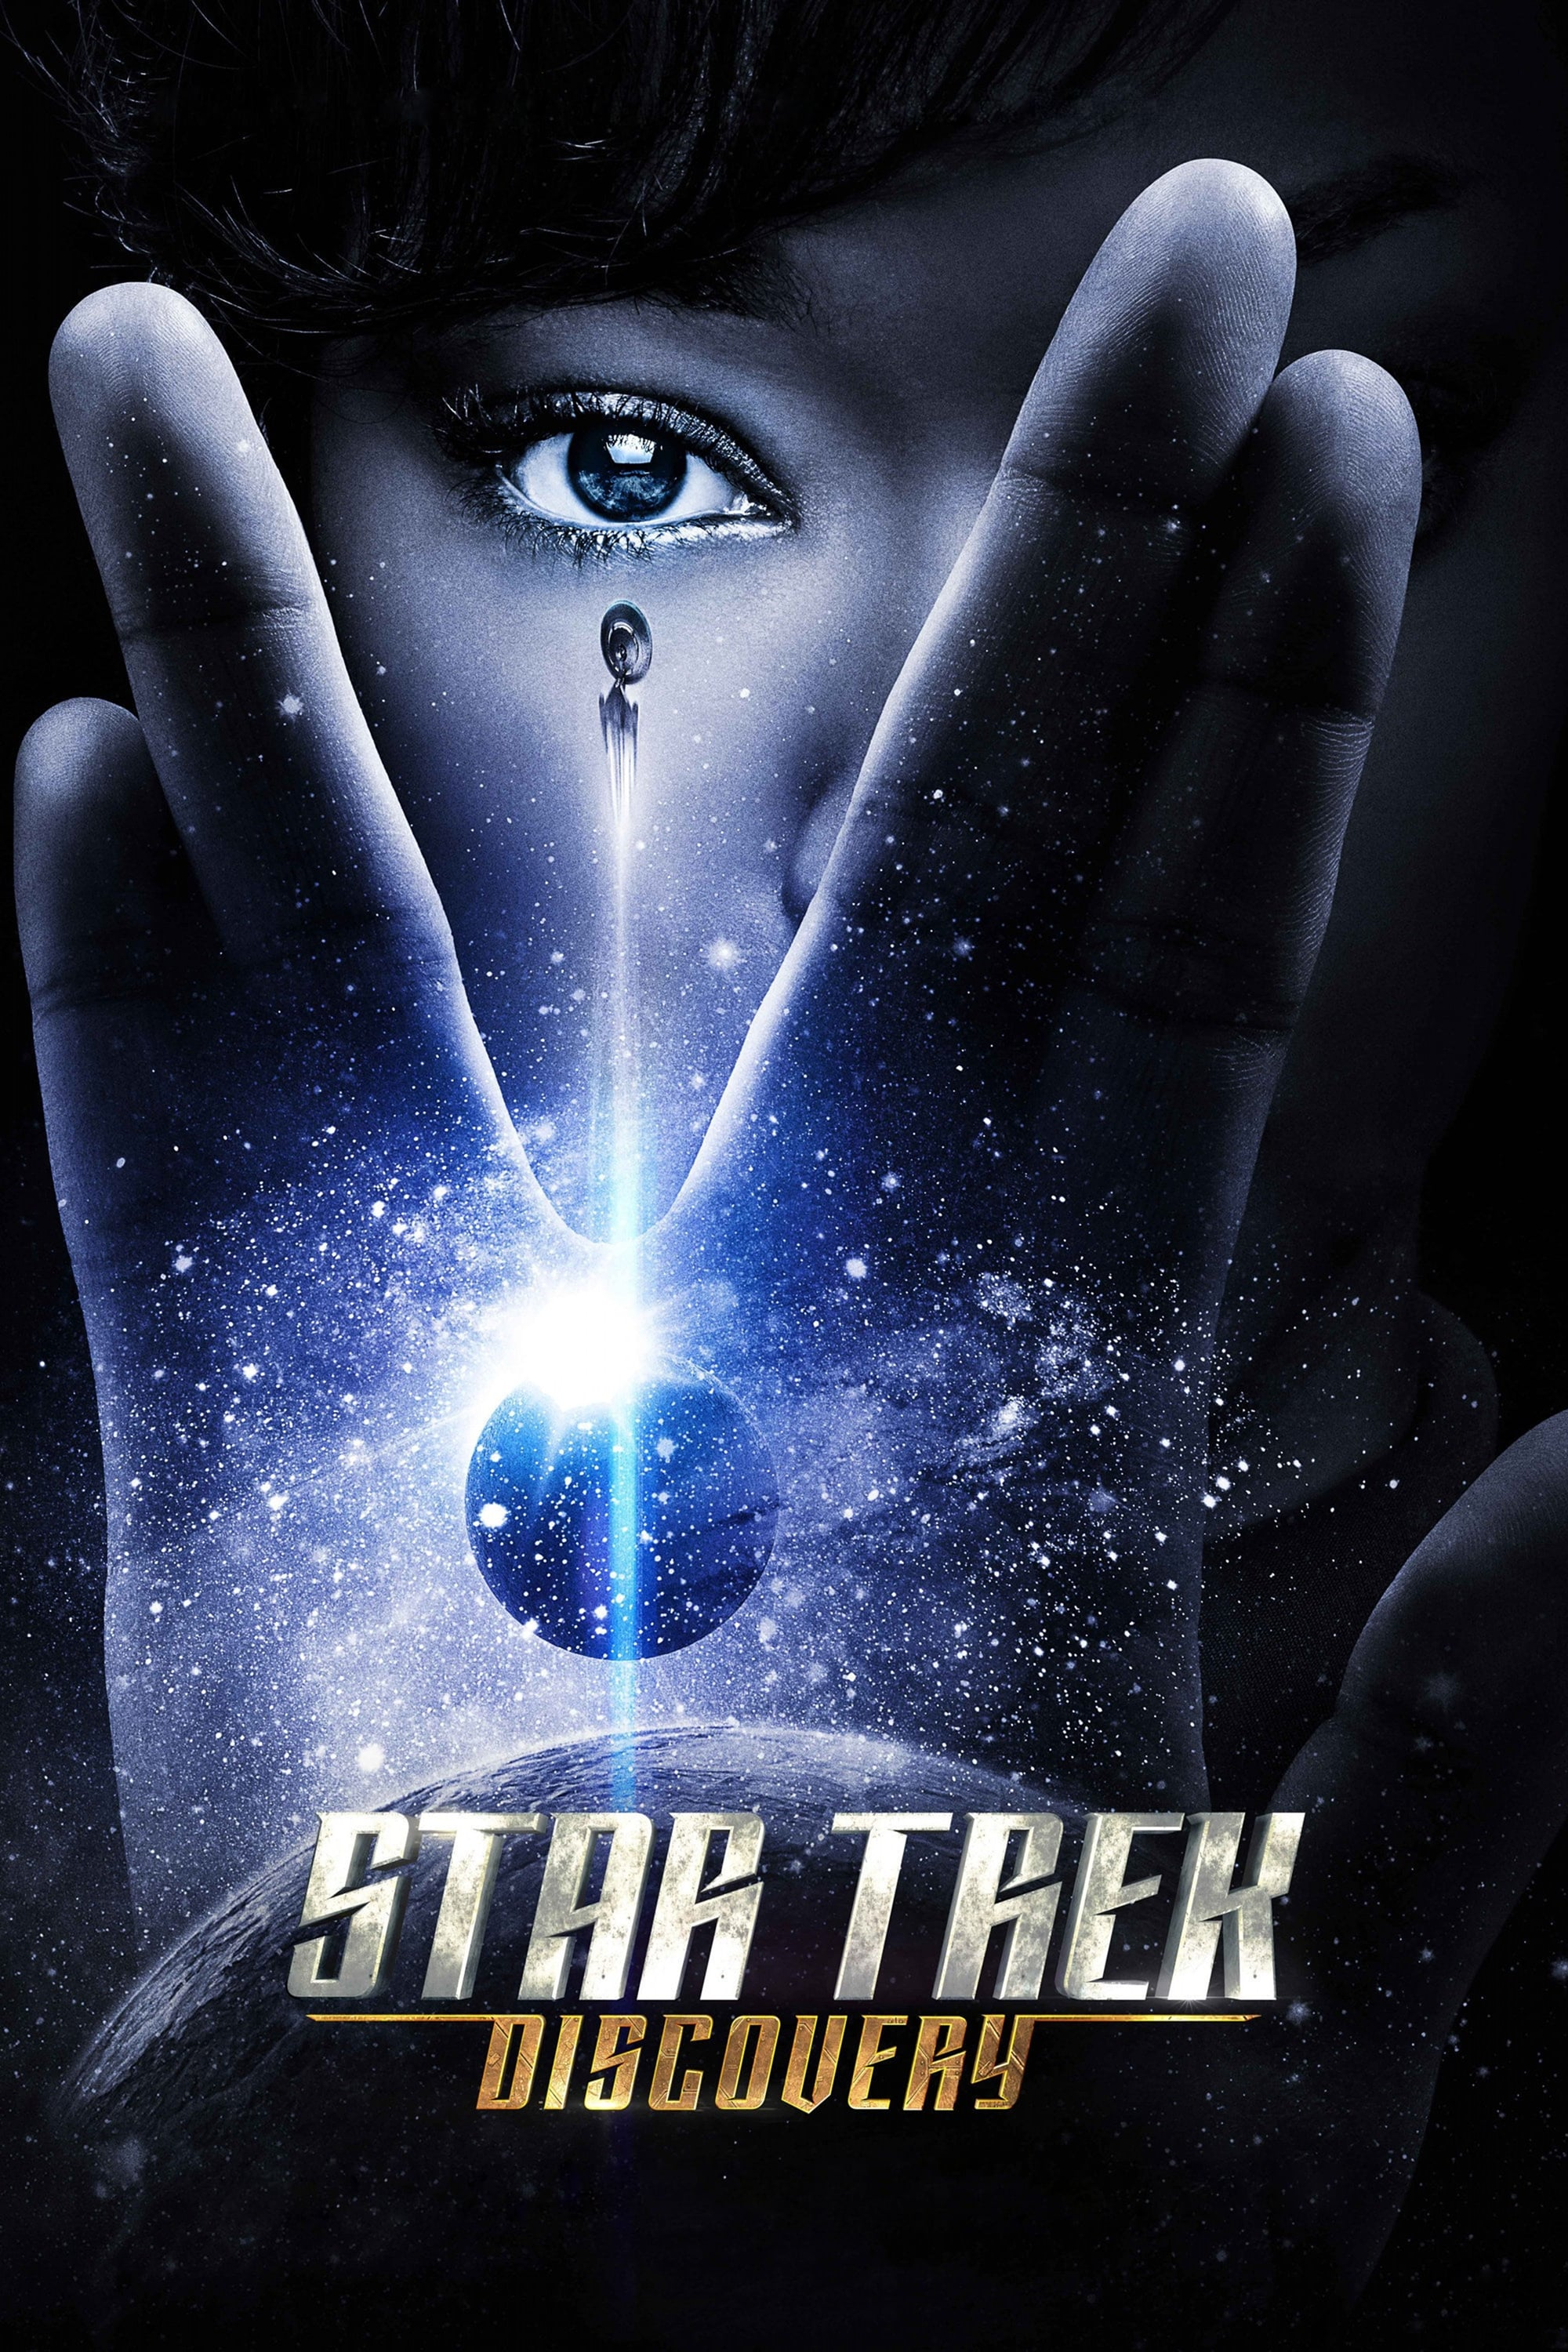 image for Star Trek: Discovery